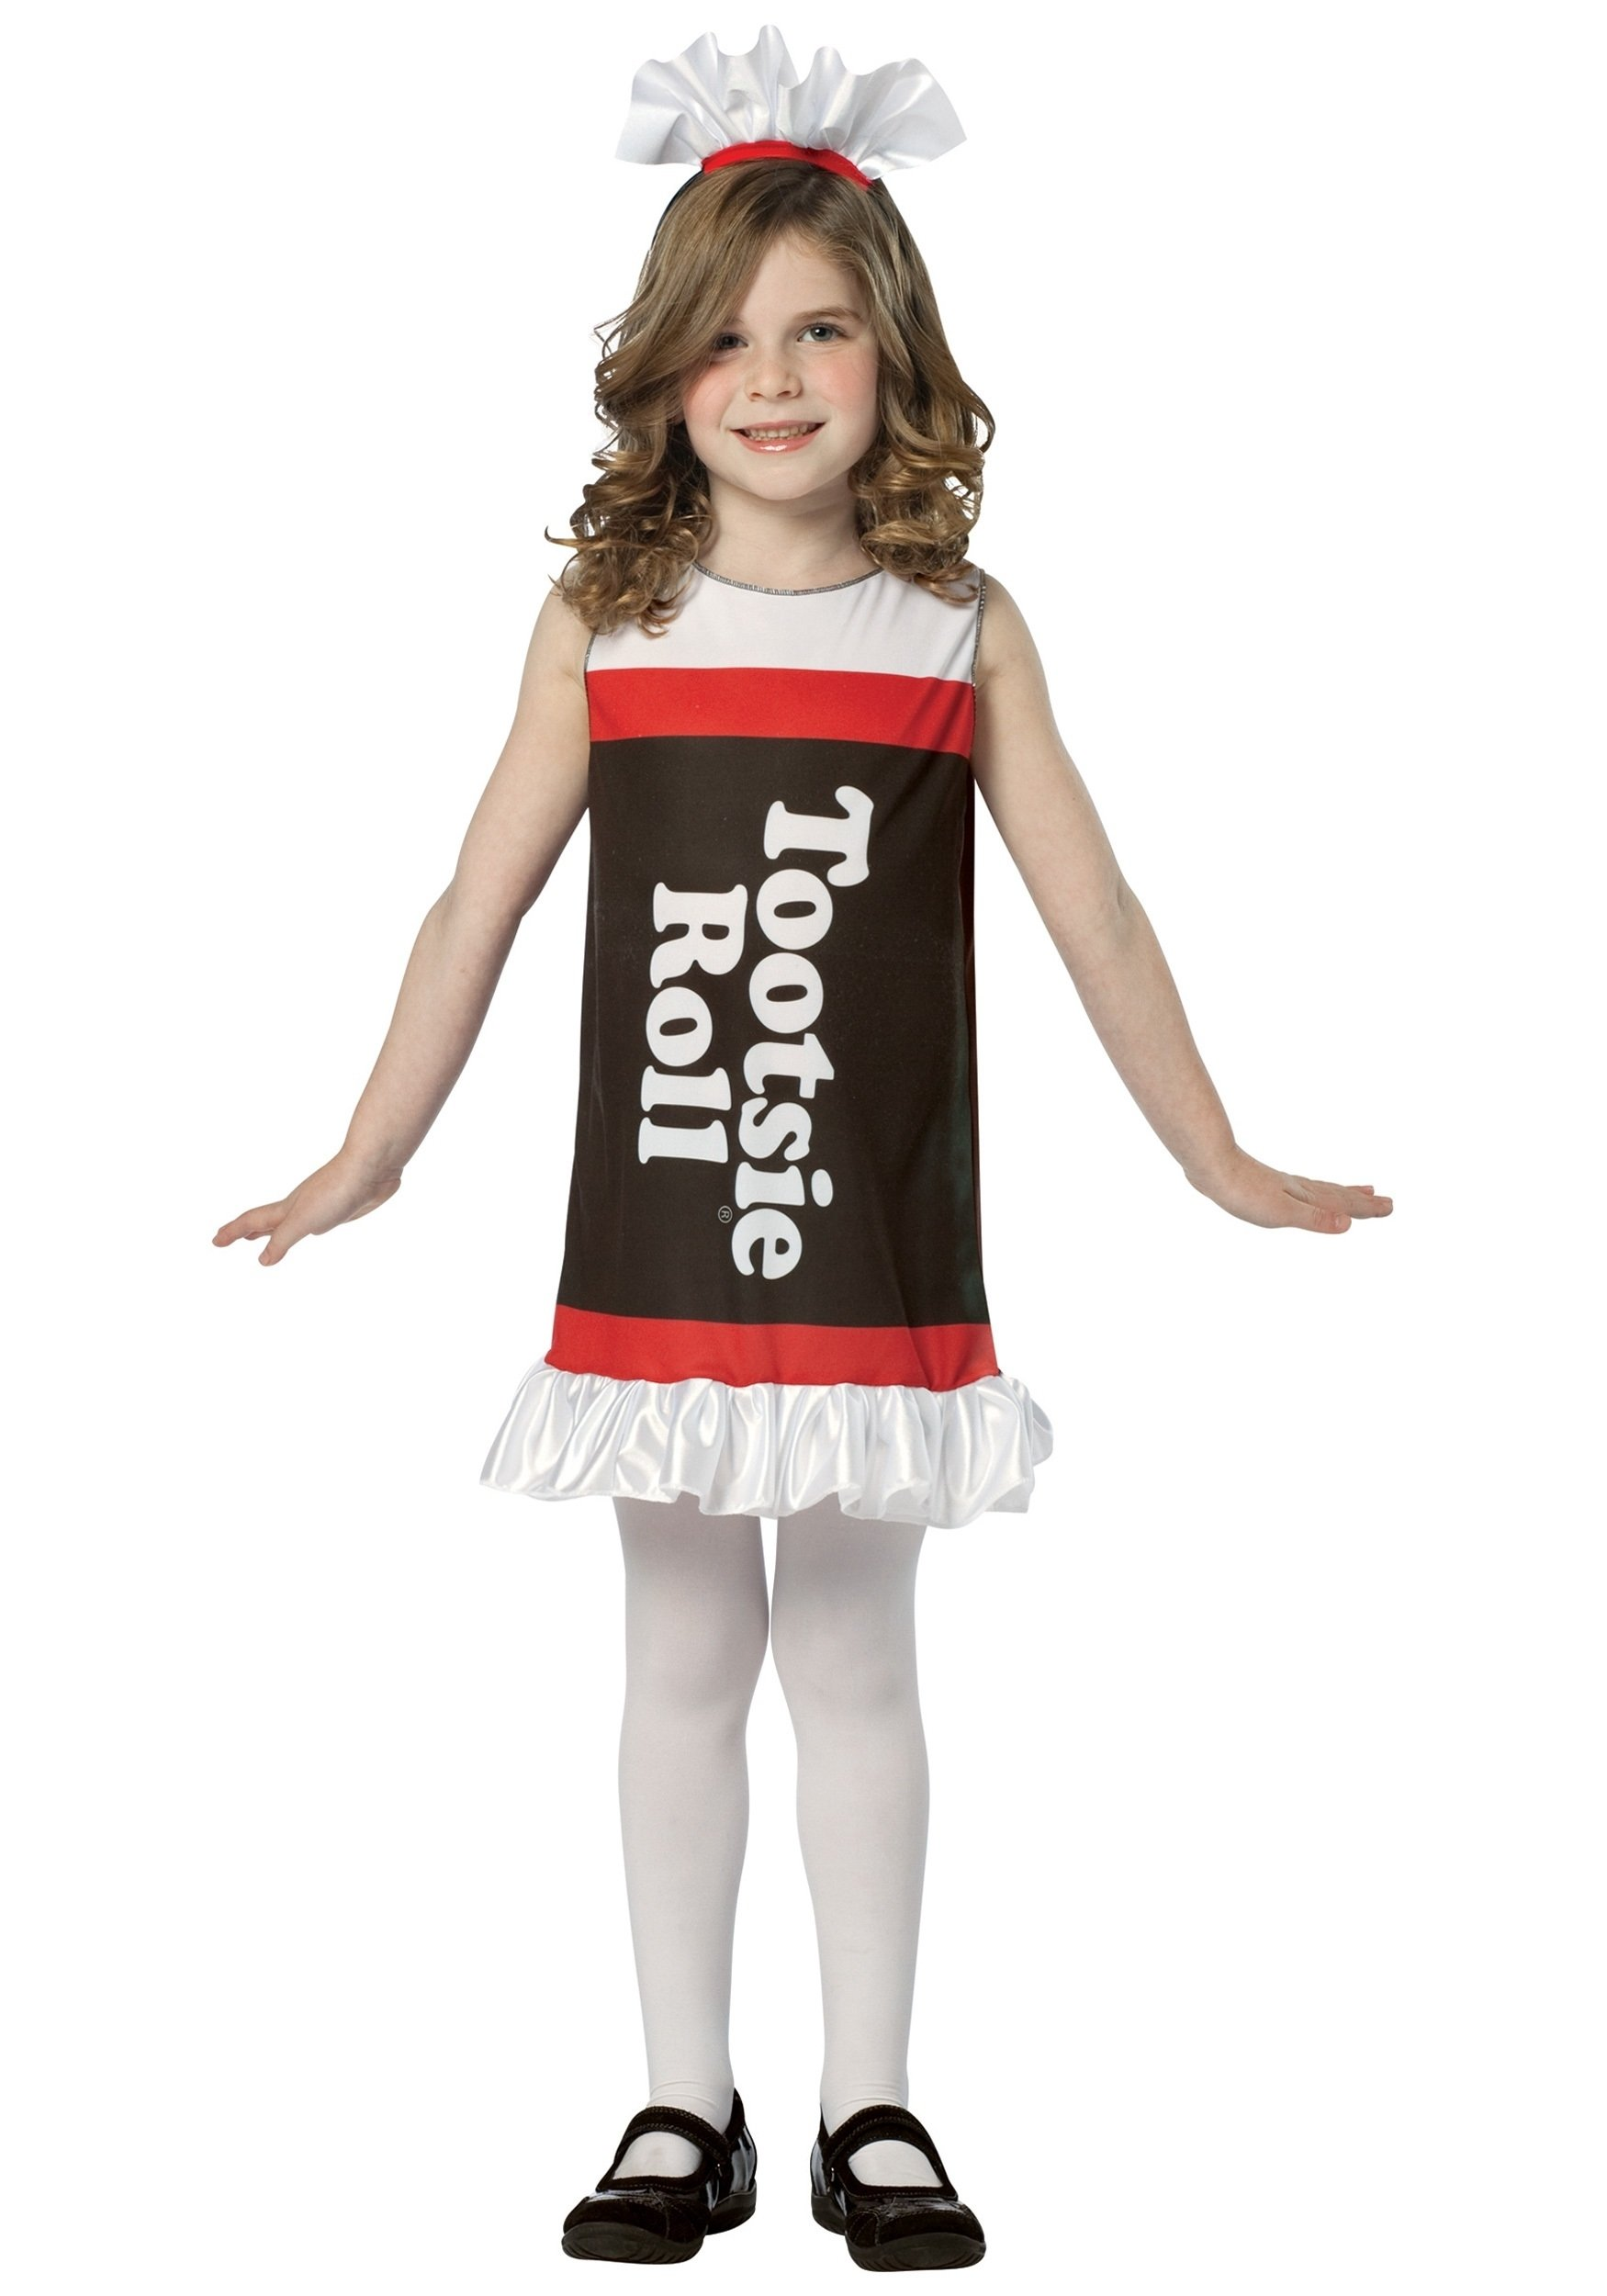 10 Perfect Cute Teen Halloween Costume Ideas girls tootsie roll dress 2021